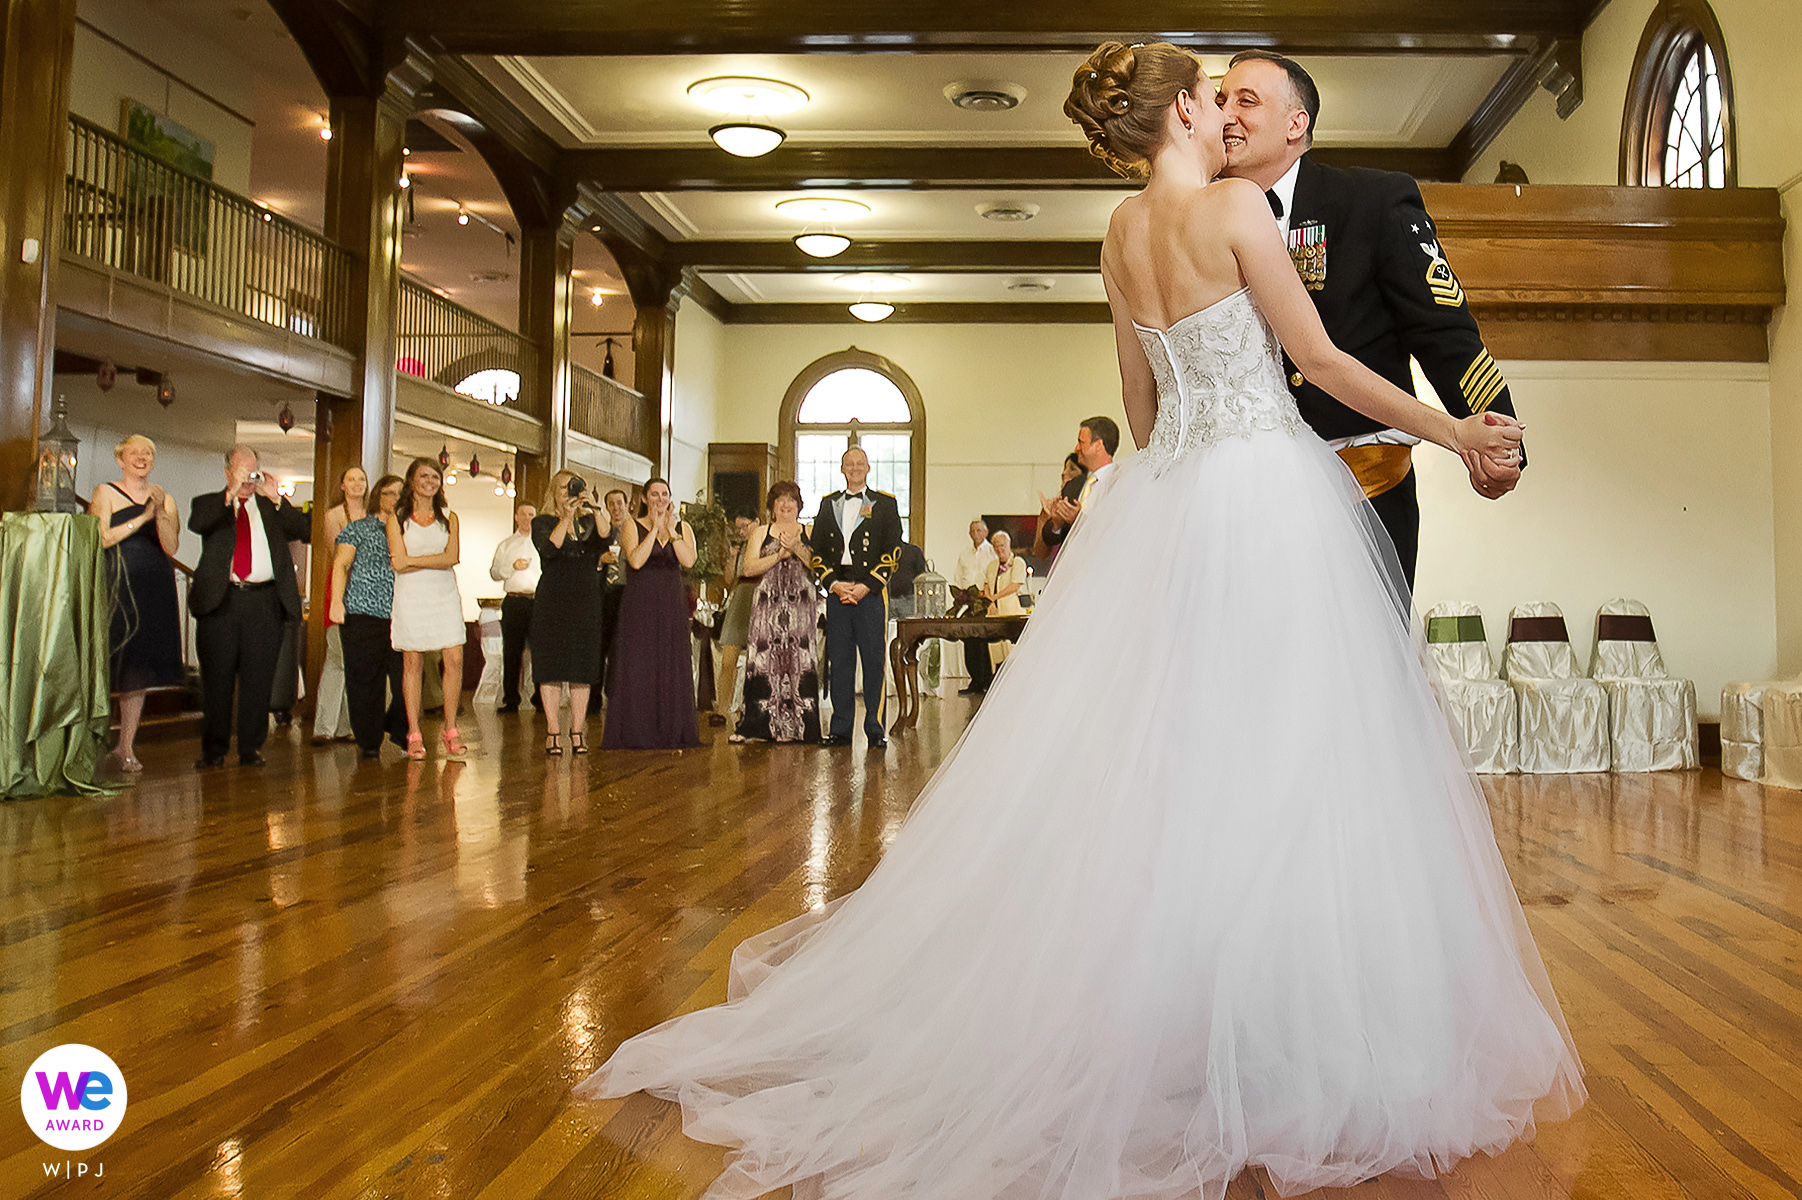 Cultural Center of Hattiesburg, Mississippi Wedding Pic | the happy bride and groom dance for the first time as a married couple